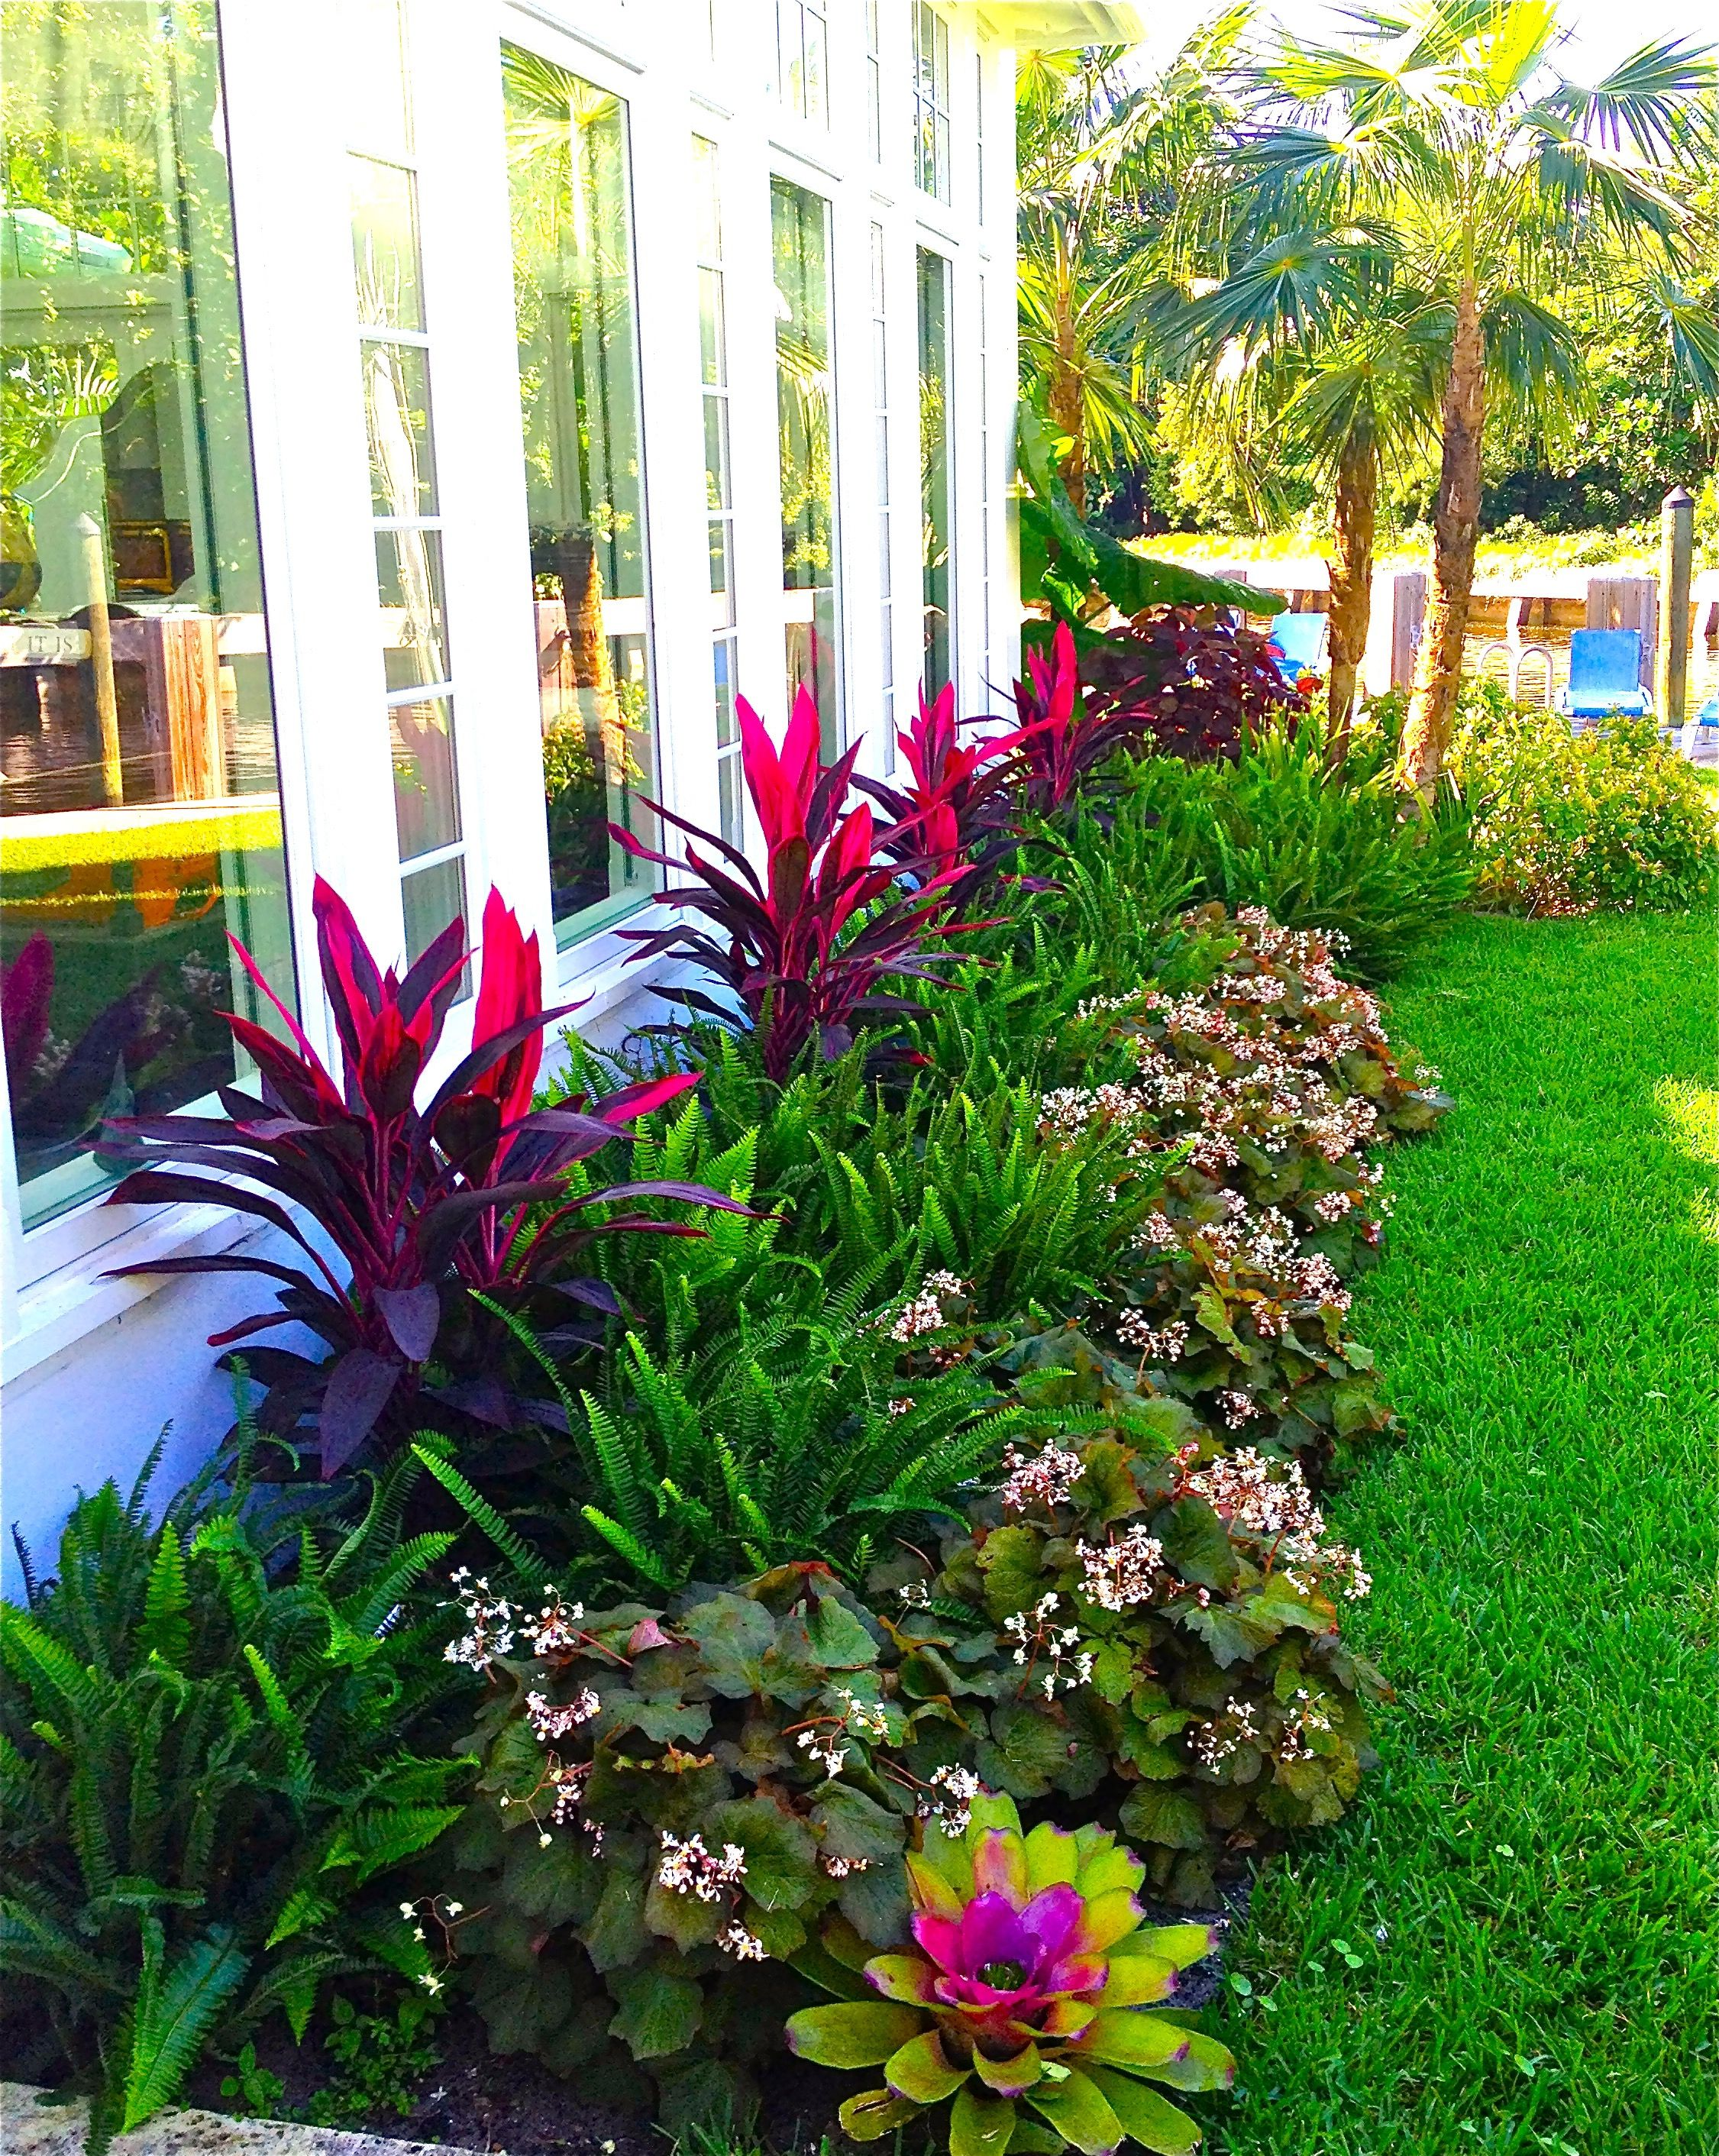 Stunning way to add tropical colors to your outdoor Florida landscape design ideas